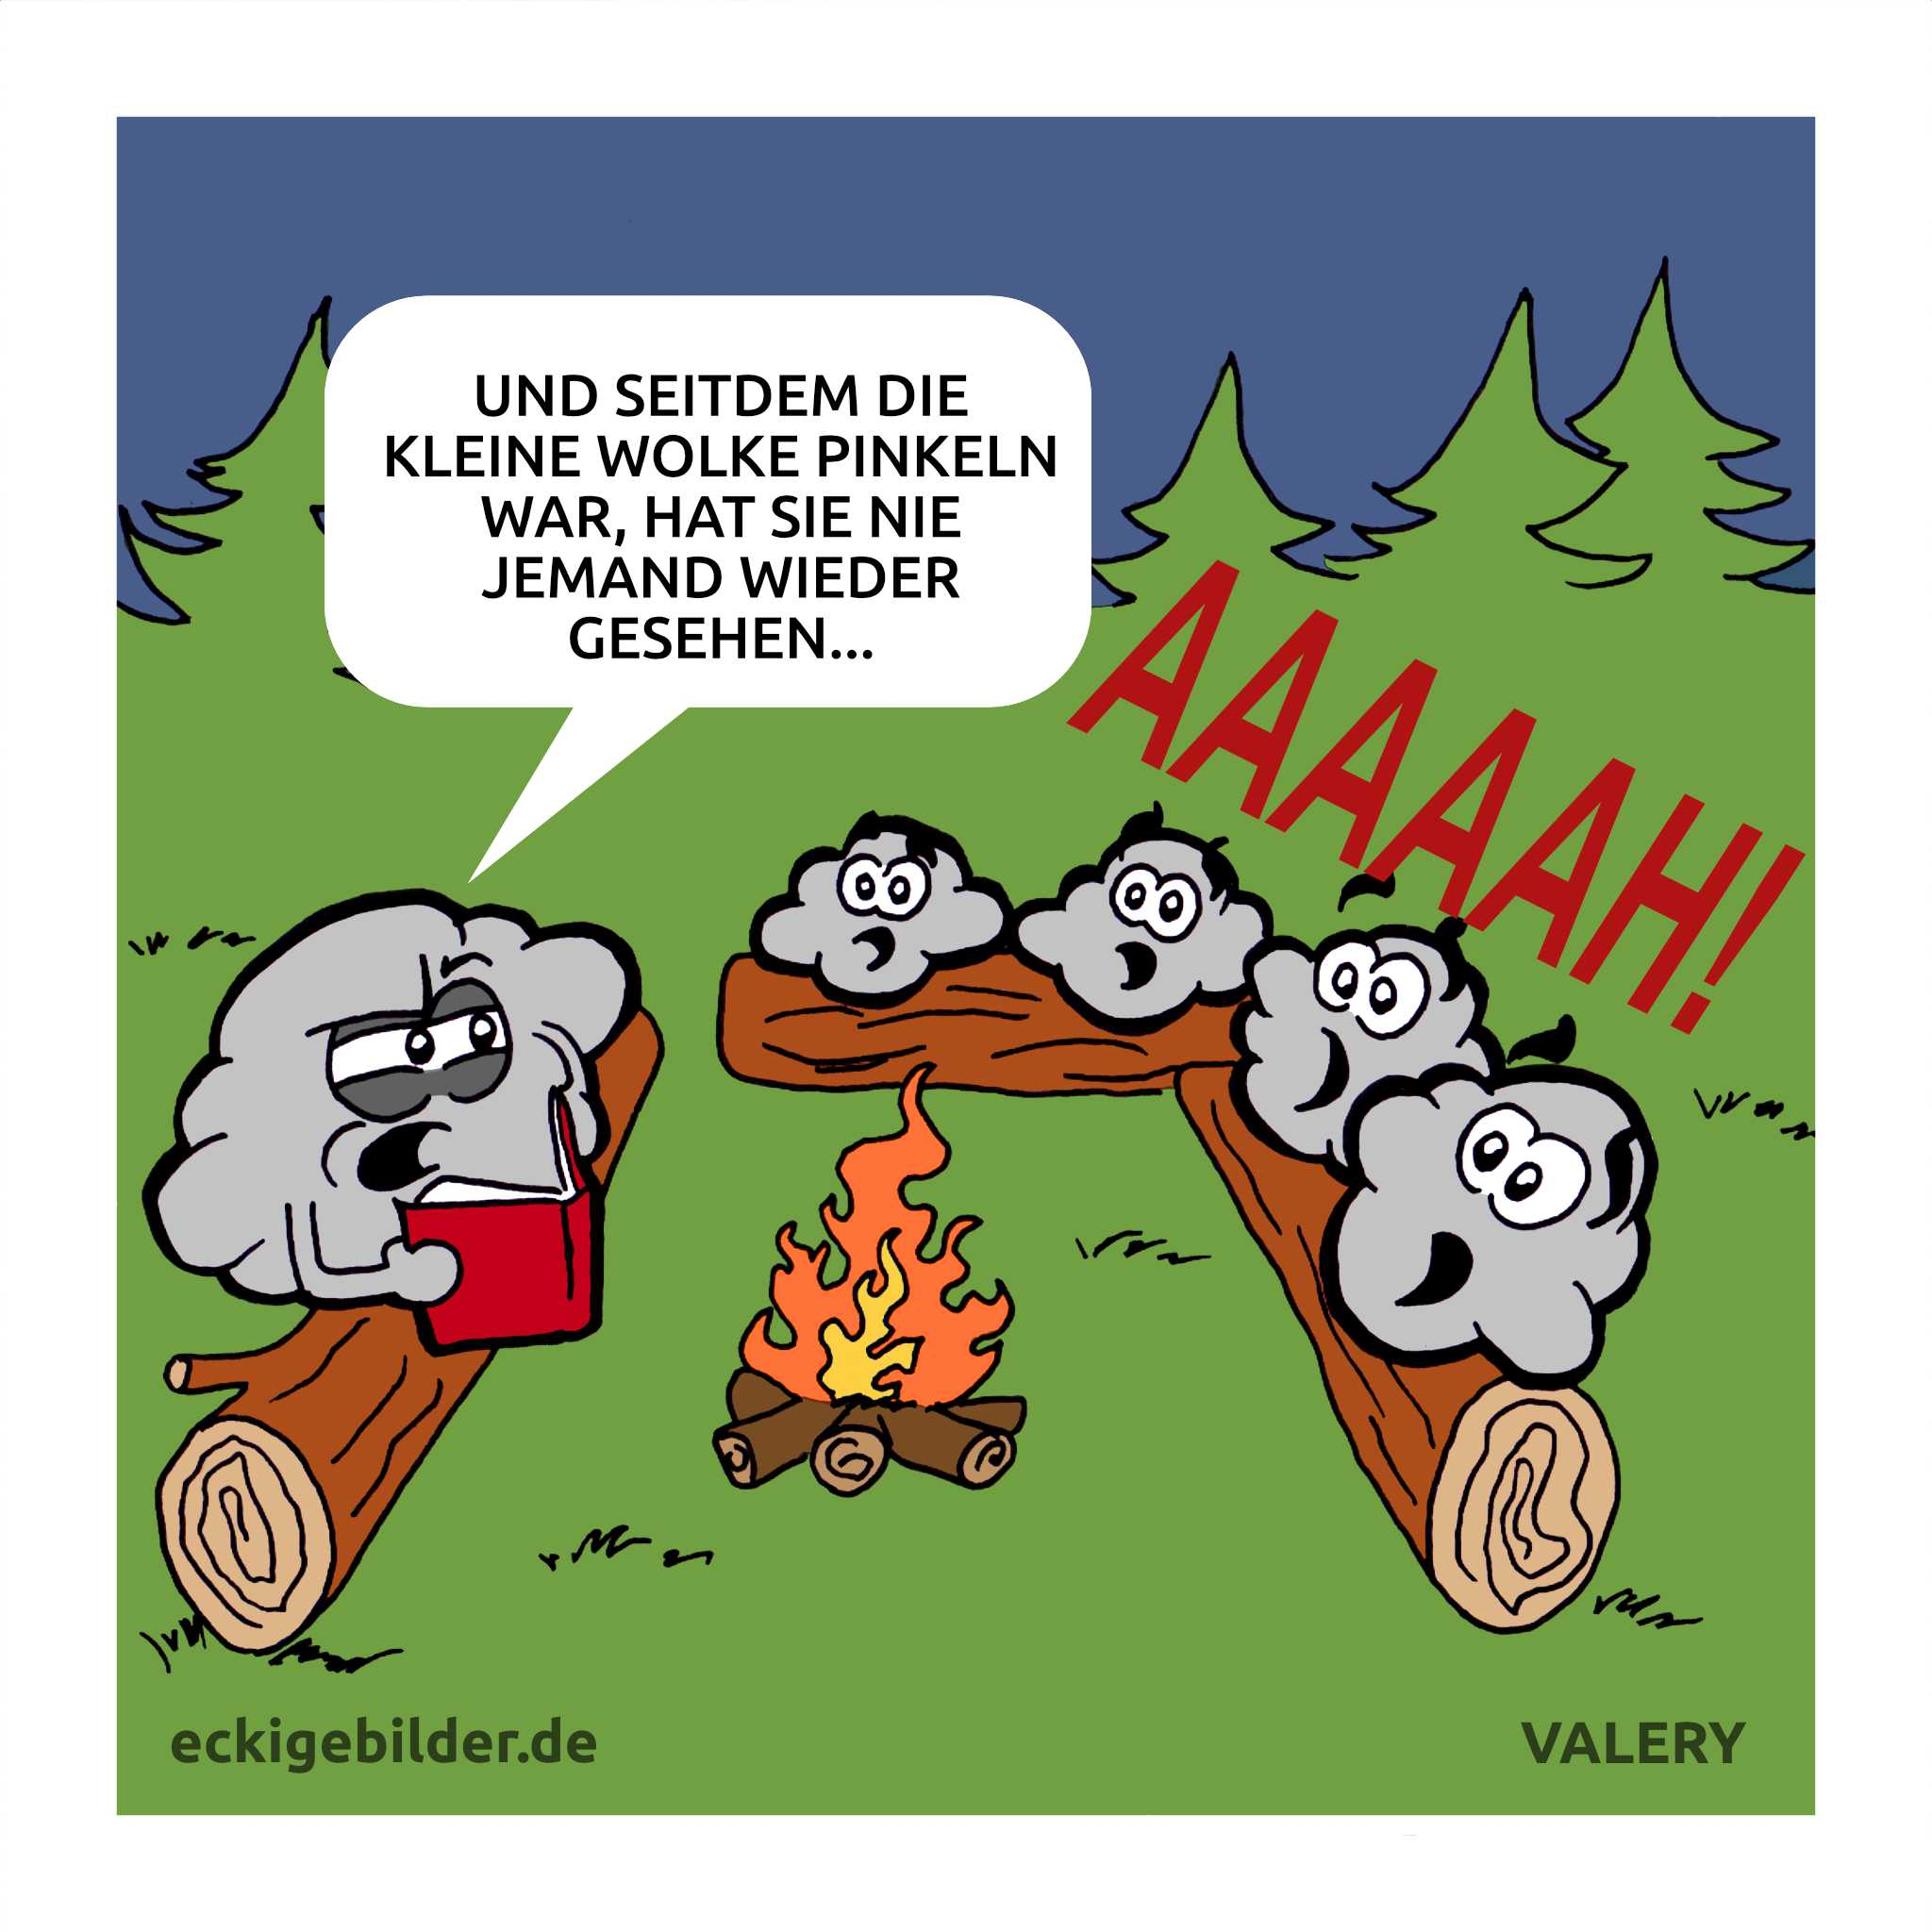 Wolke Horrorgeschichte Lagerfeuer Cartoon